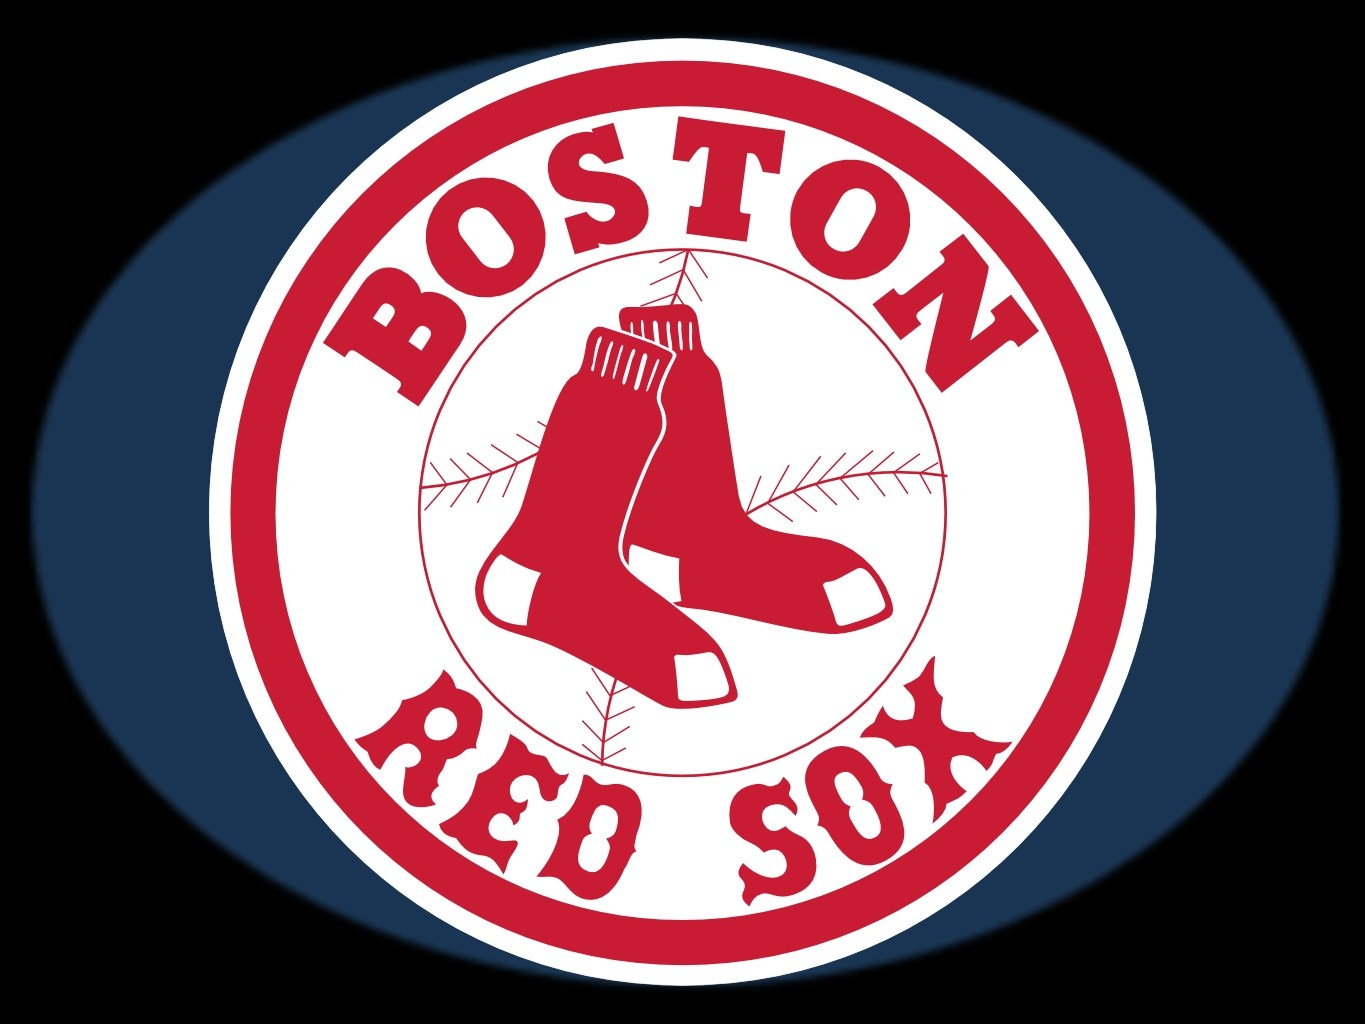 Boston Red Sox Logo Clip Art N32 image in Vector cliparts category.